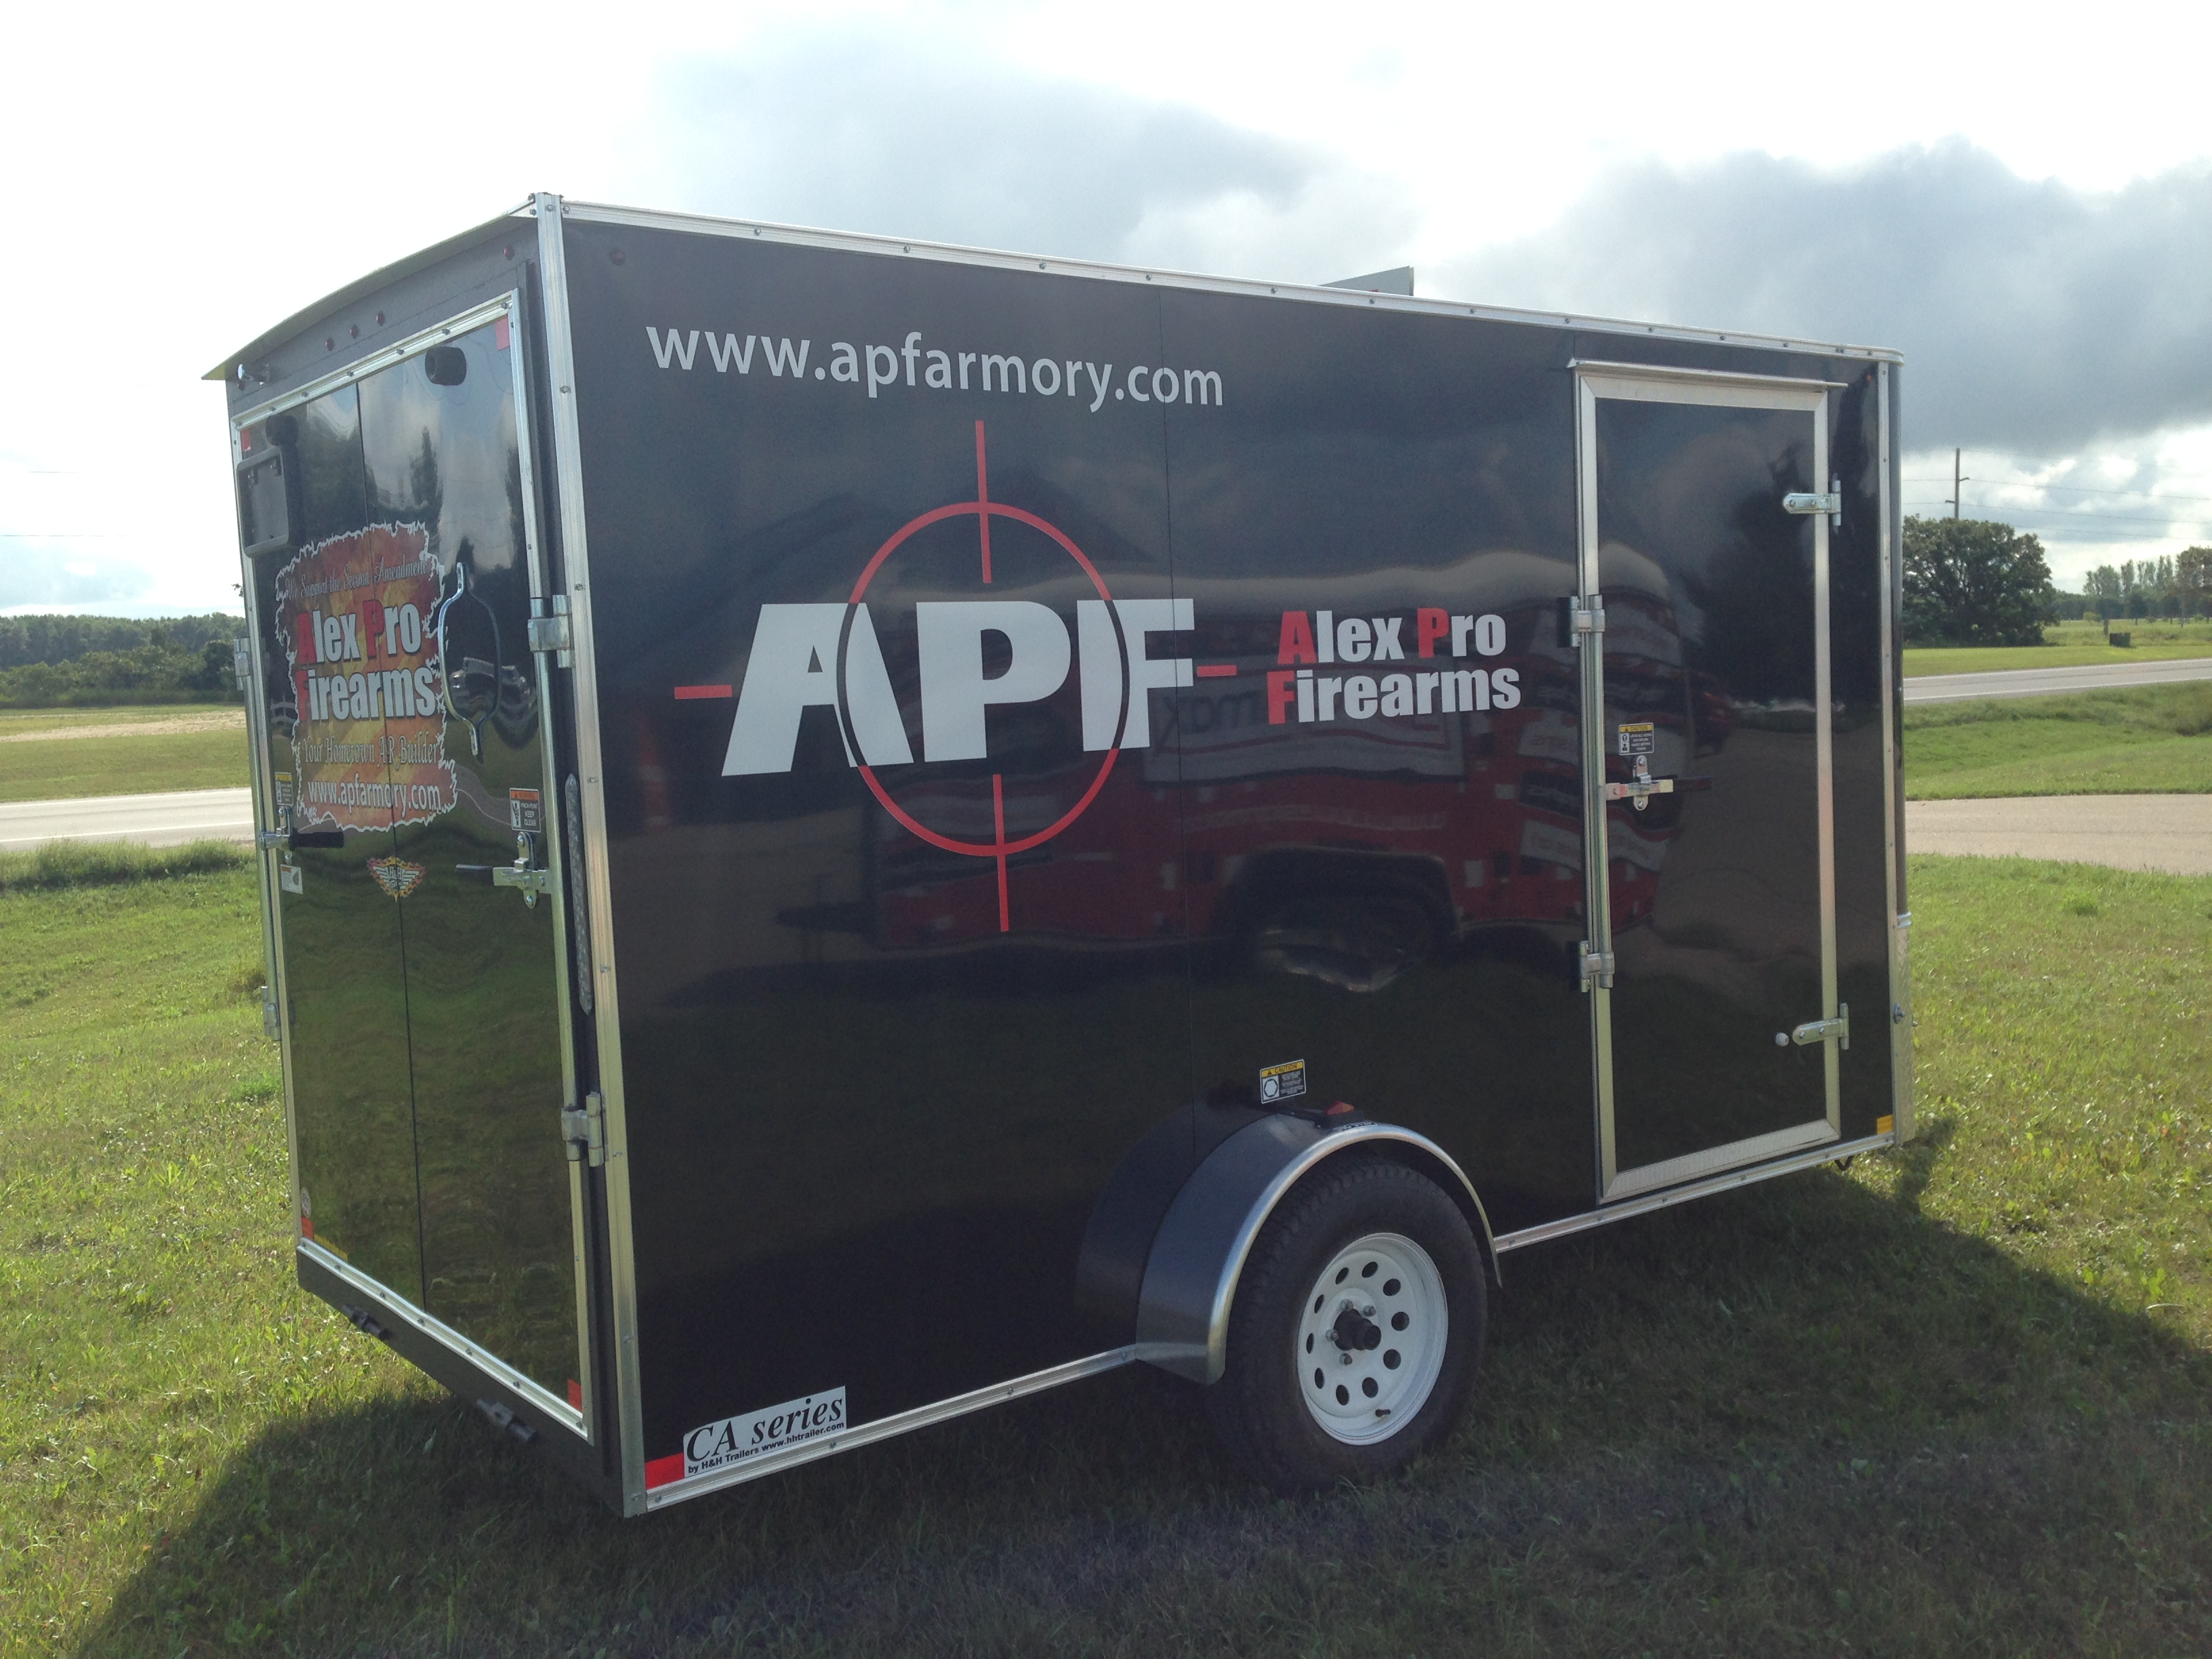 Alex Pro Firearms Trailer Decals | Signmax.com